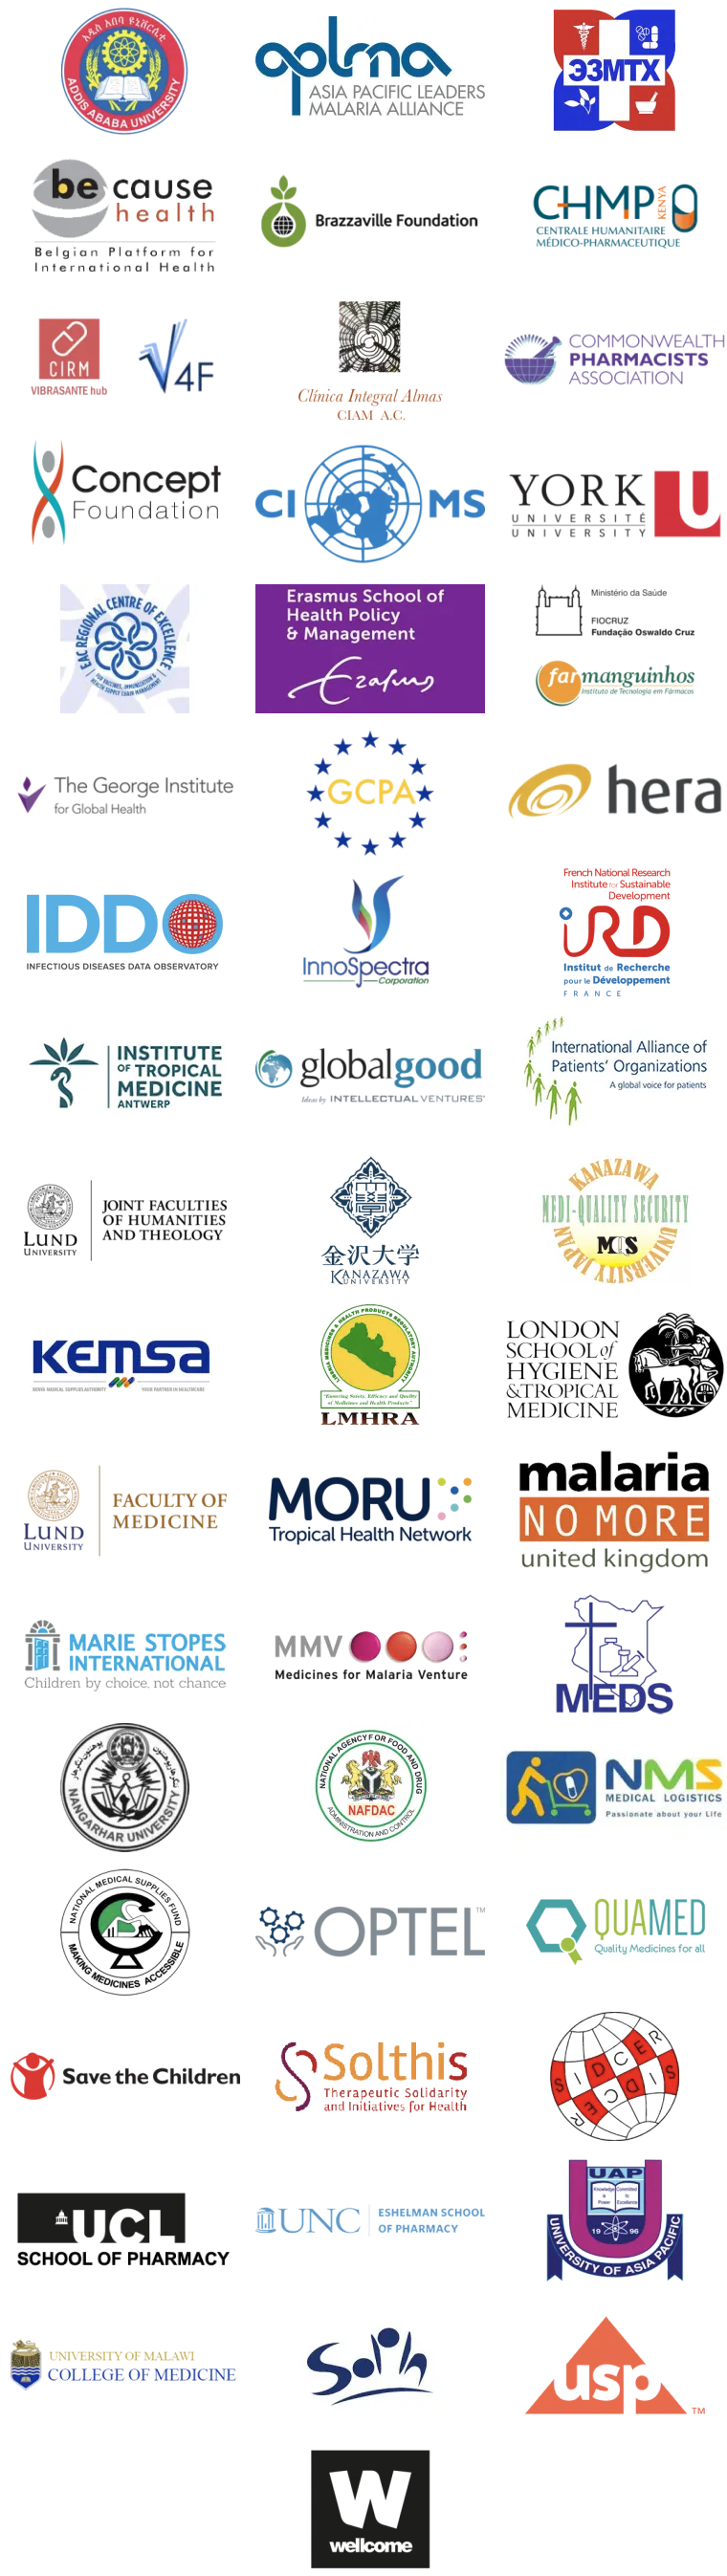 Logos of the numerous signatories of the Oxford Statement, following the MQPH Conference in 2018: Addis Ababa University, Addis Ababa, Ethiopia; Asia Pacific Leaders Malaria Alliance (APLMA); The Association of Mongolian Pharmacy Professionals; Medicines Working Group of Be-cause Health; Brazzaville Foundation; CIRM VIBRASANTE hub & V4F Consortium; Clinica Integral Almas (CIAM A.C.); Concept Foundation; Council for International Organizations of Medical Sciences (CIOMS); Dahdaleh Institute for Global Health Research at York University, Canada; East African Center of Excellence for Vaccines, Immunizations and Health Supply Chain Management; The Erasmus School of Health Policy and Management at Erasmus University; Farmanguinhos, Oswaldo Cruz Foundation, Ministry of Health Brazil; The George Institute for Global Health; Global Clinical Practice Alliance (GCPA); hera; Infectious Diseases Data Observatory (IDDO); InnoSpectra; Institute of Tropical Medicine, Antwerp; Institut de Recherche pour le Développement (French Research Institute for Development); Intellectual Ventures' Global Good Fund; International Alliance of Patients' Organizations (IAPO); The Joint Faculties of Humanities and Theology, Lund University, Sweden; Kanazawa University, Medi-Quality Security Institute, Japan; Kenya Medical Supplies Authority (KEMSA); Liberia Medicines and Health Products Regulatory Authority; London School of Hygiene & Tropical Medicine; Lund University Faculty of Medicine; Mahidol Oxford Research Unit, University of Oxford; Malaria No More UK; Medicines for Malaria Venture (MMV); Mission for Essential Drugs and Supplies (MEDS); Nangarhar University Medical Faculty, Afghanistan; National Agency for Food & Drug Administration (NAFDAC), Nigeria; National Medical Stores (NMS), Uganda; National Medical Supplies Fund, Sudan; Optel; QUAMED (Quality of Medicines for All); Save the Children; Solthis; Strategic Initiative for Developing Capacity in Ethical Review (SIDCER); University of Asia Pacific, Dhaka, Bangladesh; University of Malawi College of Medicine; University of the Western Cape, School of Public Health, South Africa; USP; Wellcome